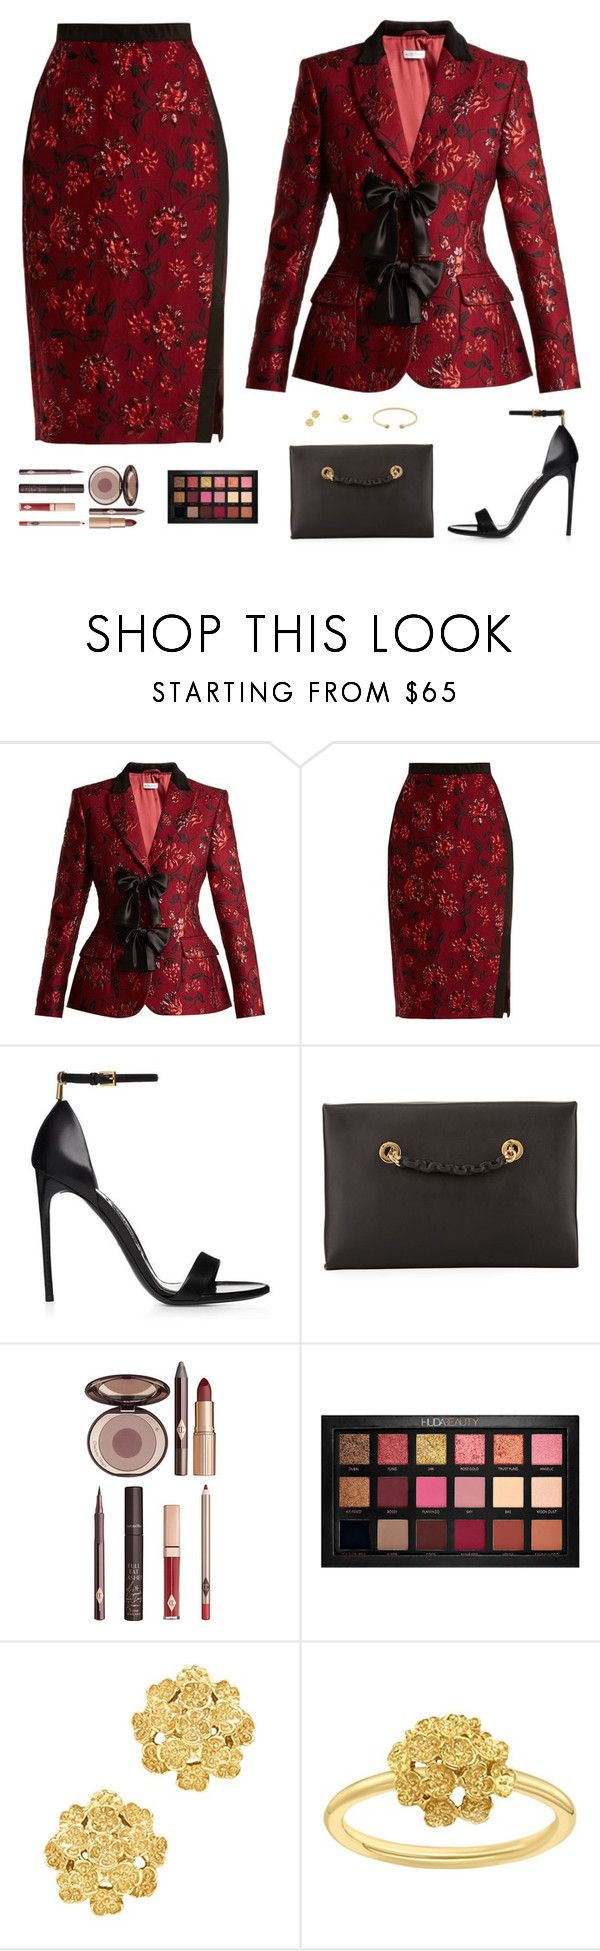 """Sin título #5132"" by mdmsb on Polyvore featuring moda, Altuzarra, Tom Ford, Charlotte Tilbury, Huda Beauty, London Road y Gucci"